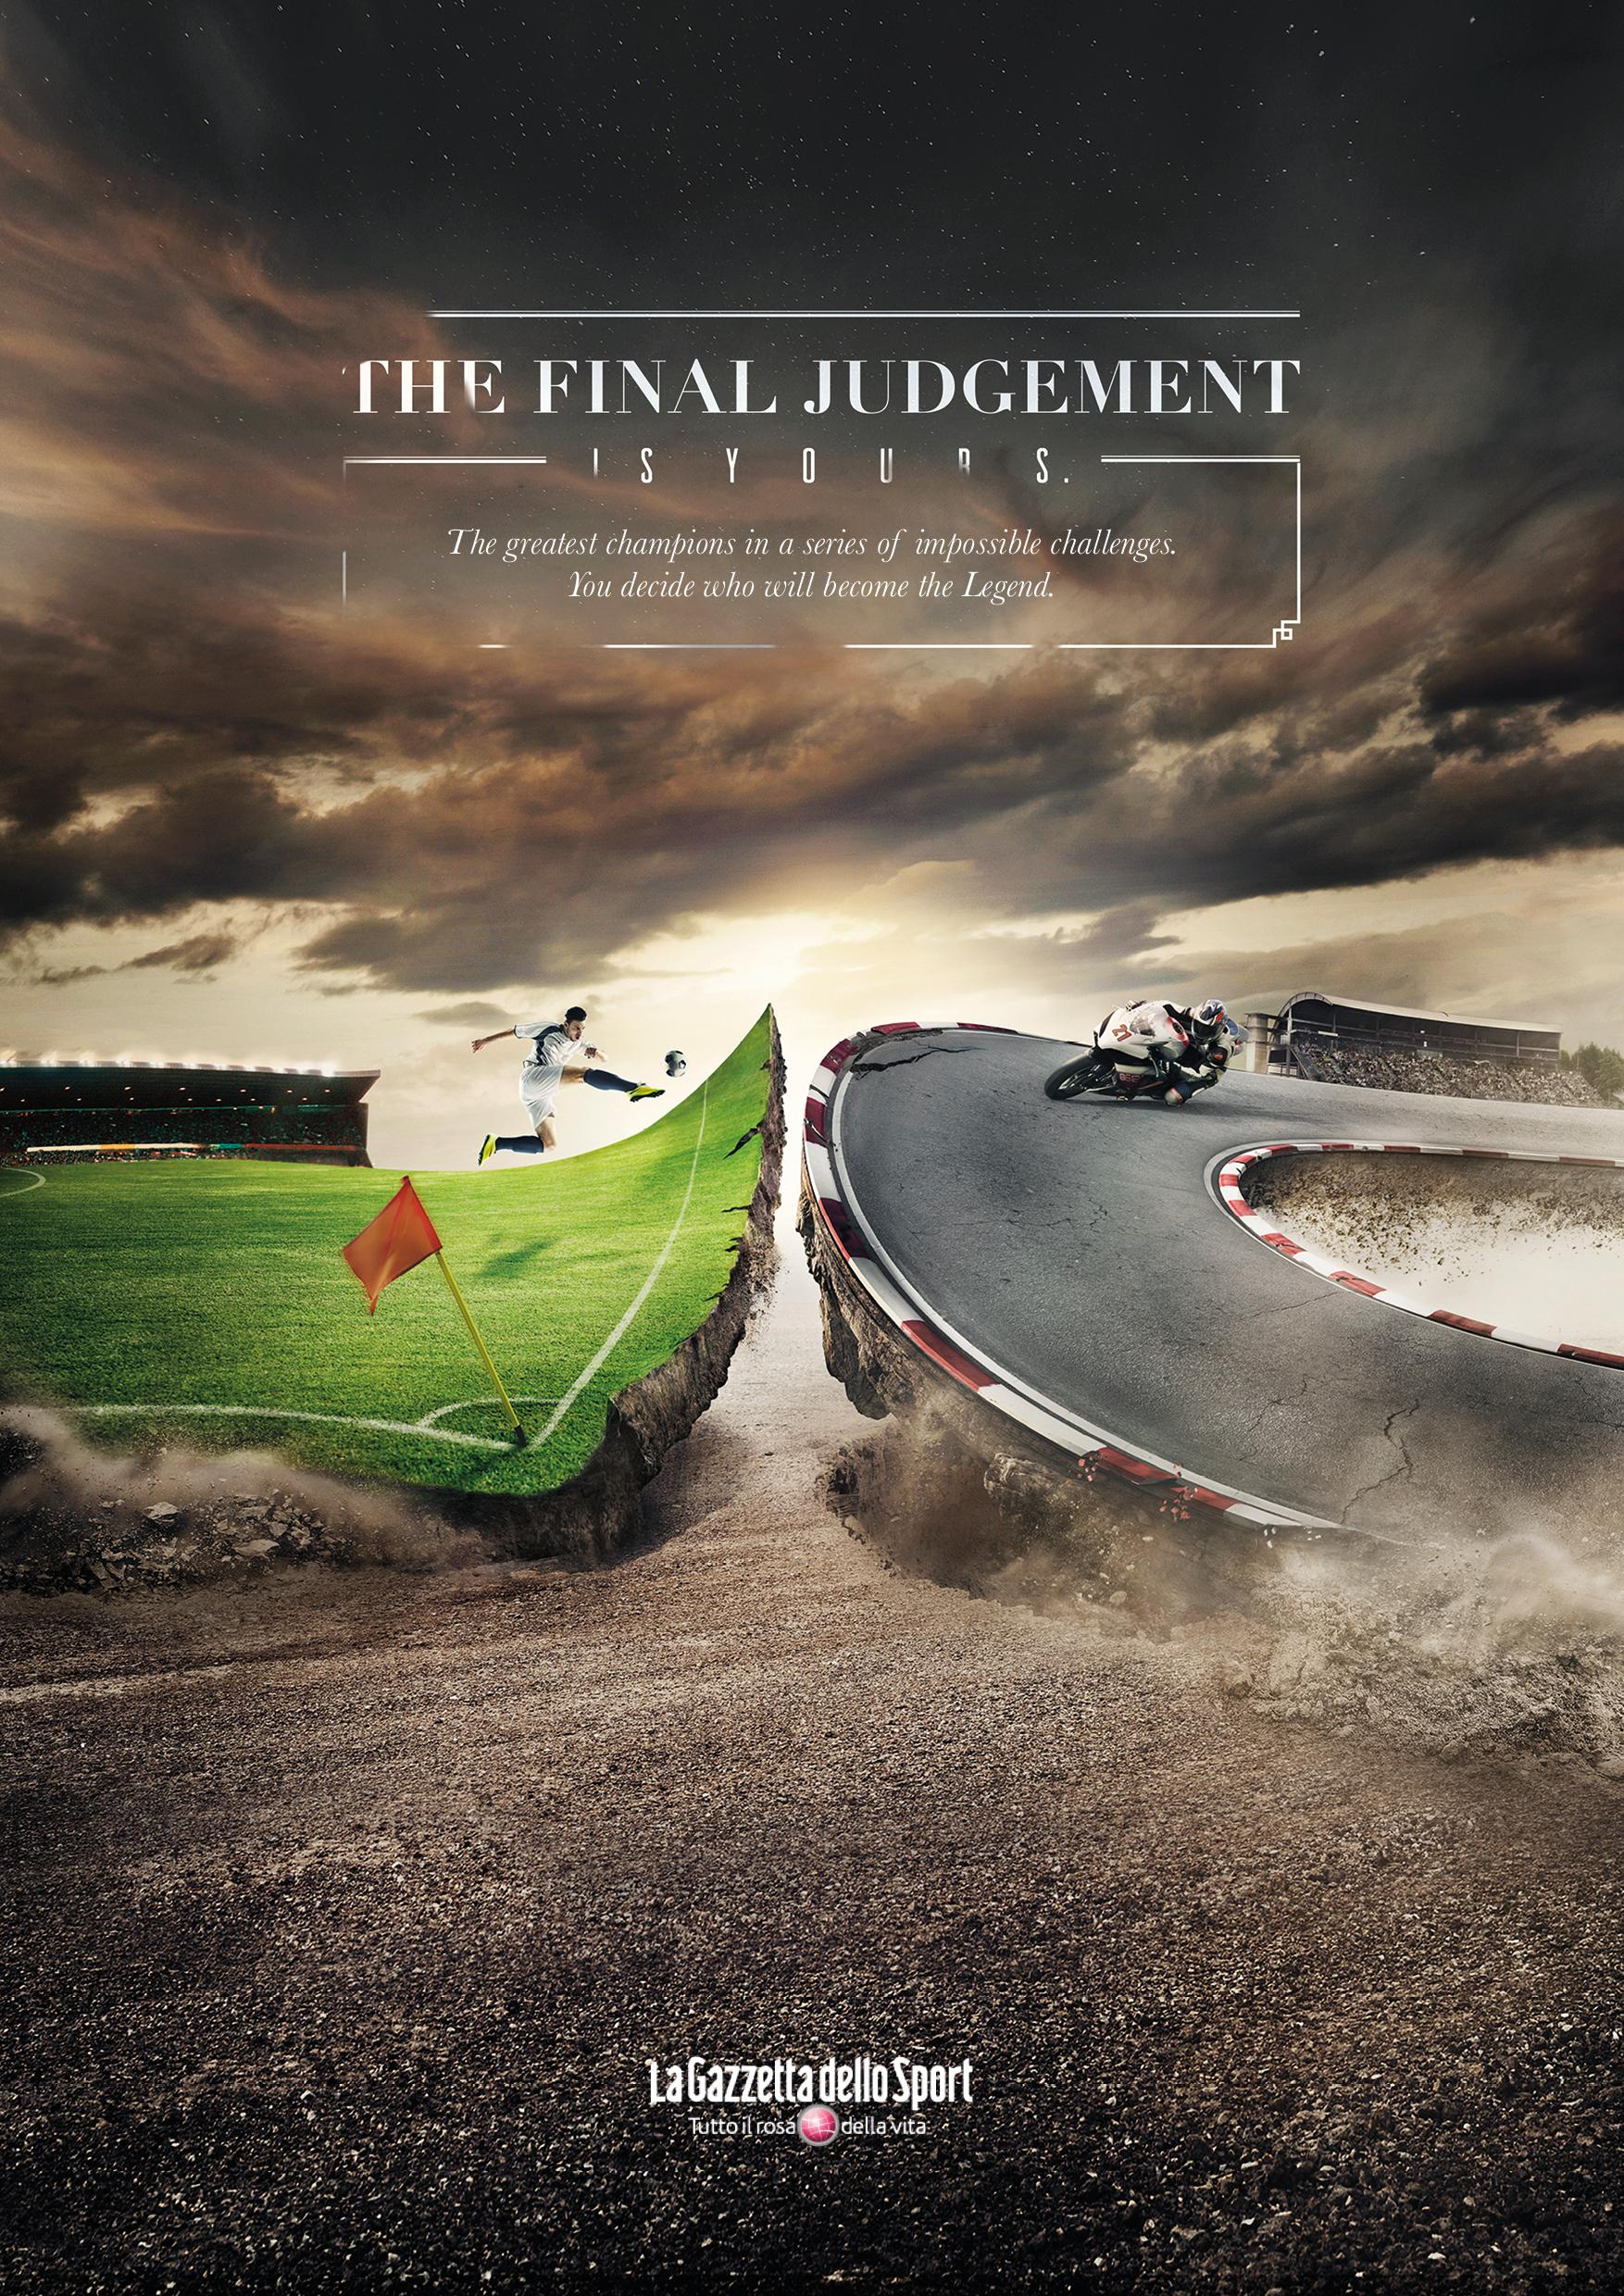 La Gazzetta dello Sport Print Ad - Final judgement, 2